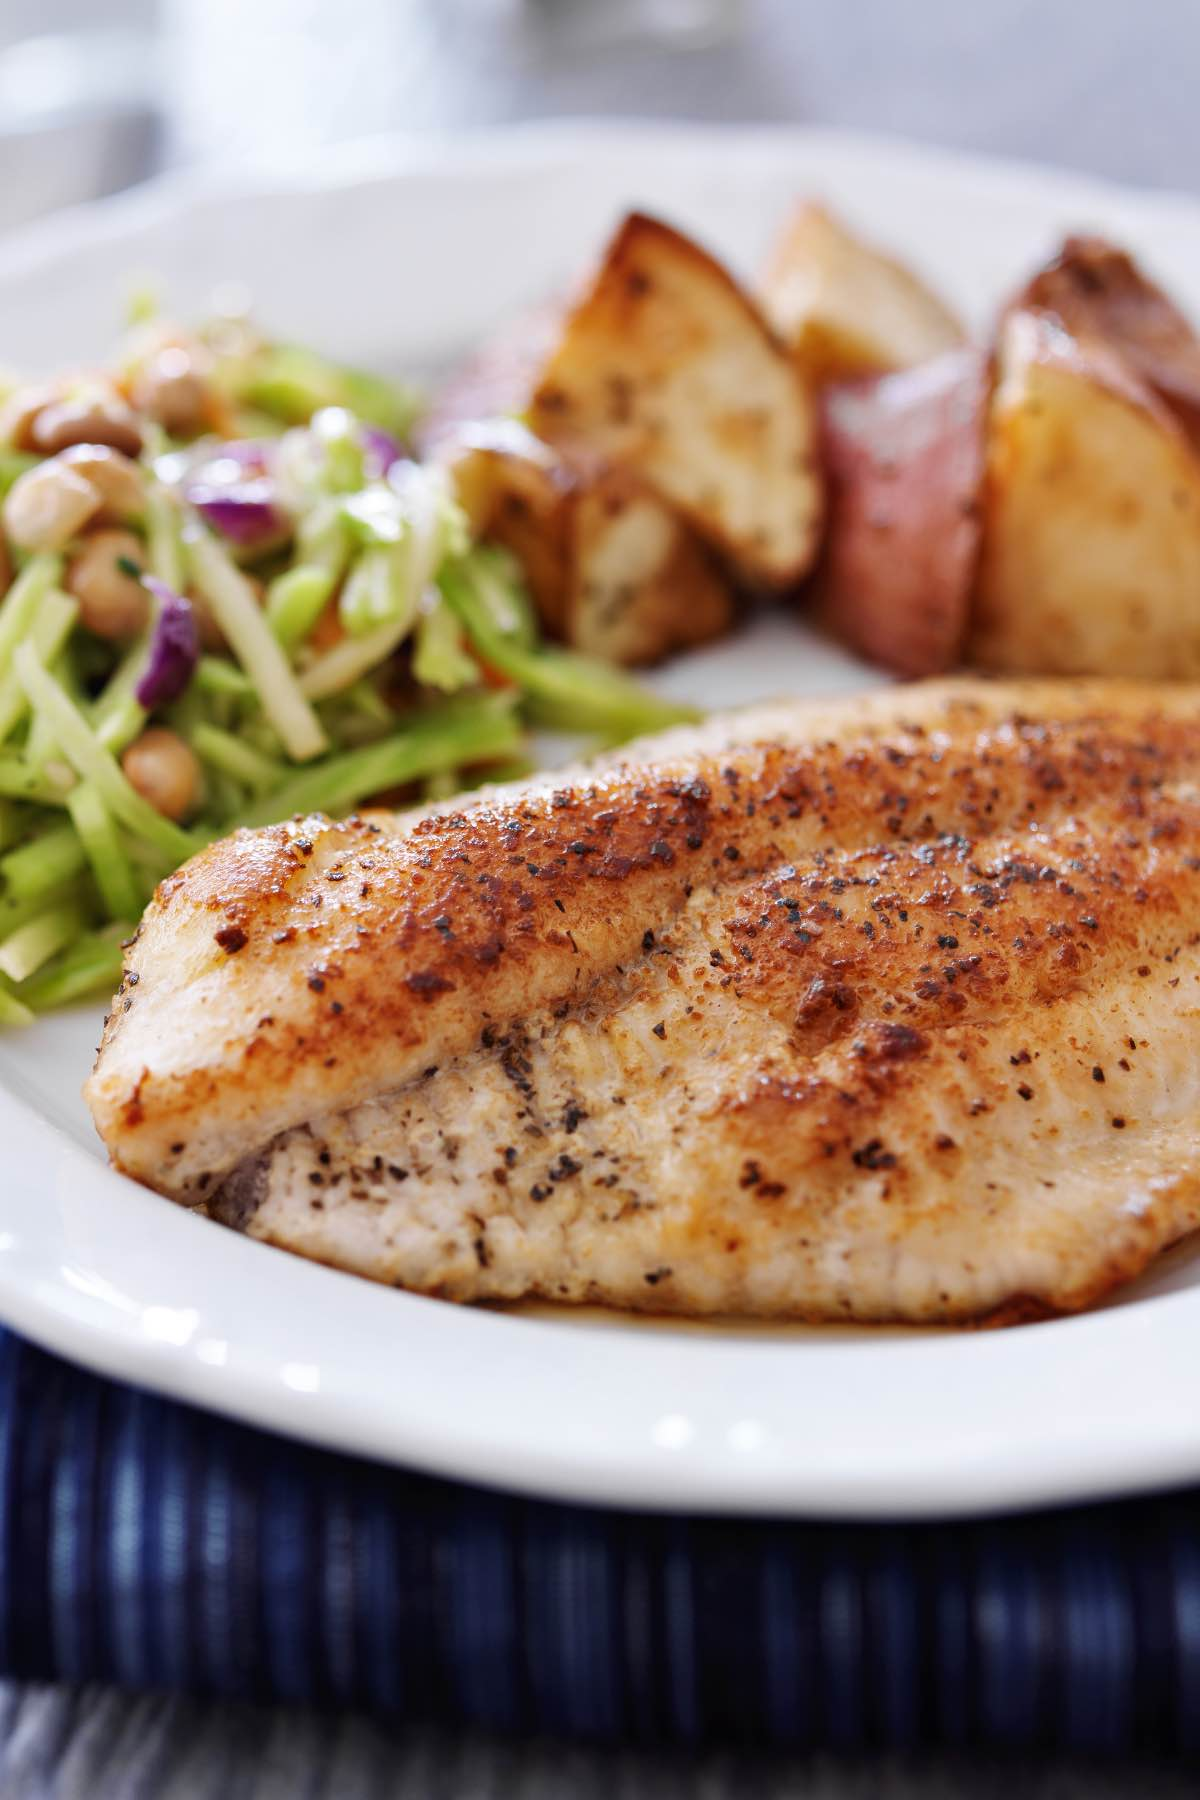 Tilapia is a nutritious and delicious freshwater fish. We've rounded 20 of the Best Sides for Tilapia that are easy to make at home. From vegetables to pasta and rice, these side dishes are perfect to serve with this healthy fish for a complete dinner!